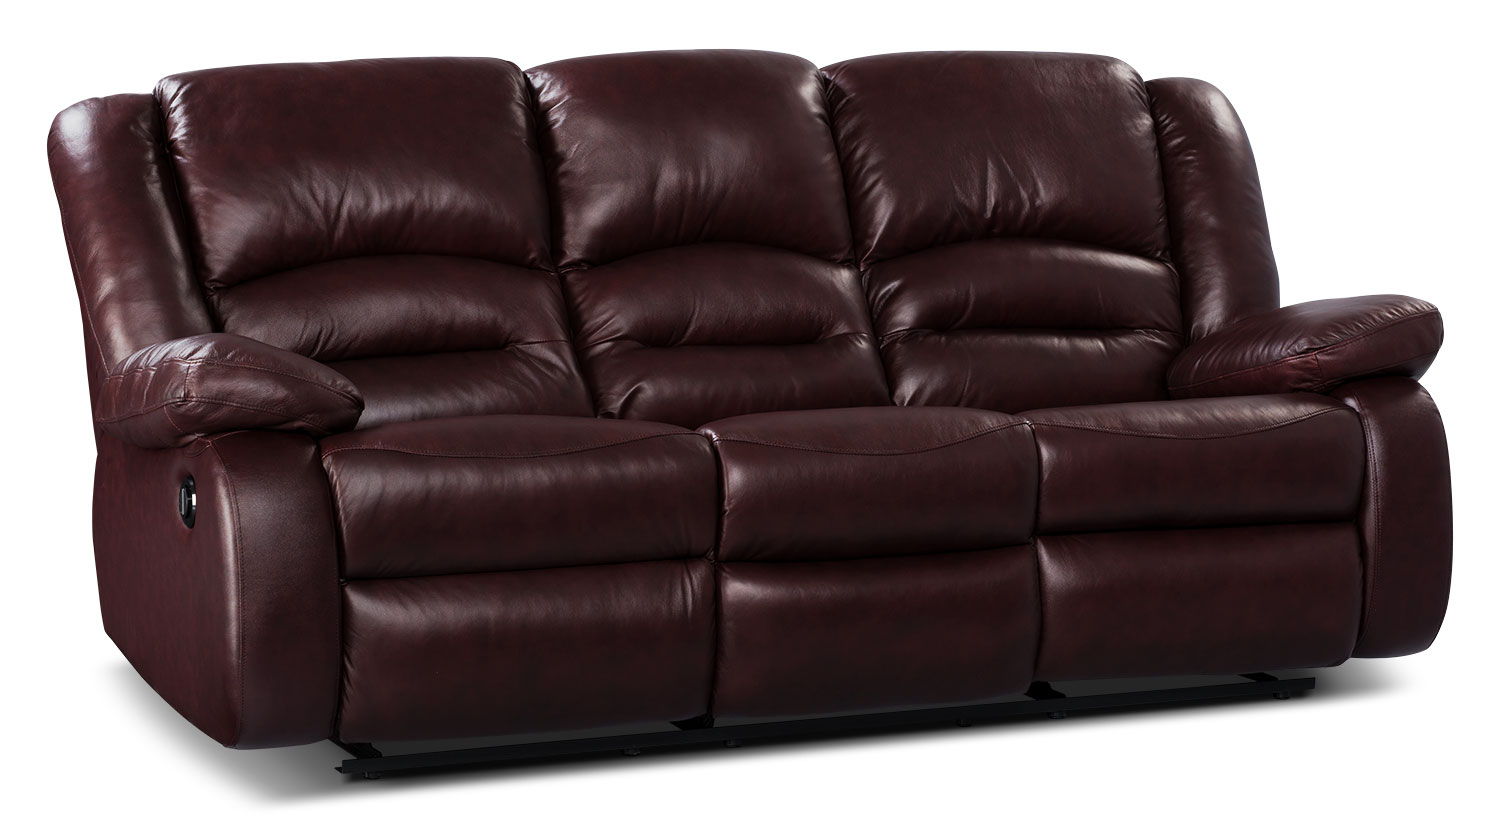 Toreno genuine leather power reclining sofa burgundy the brick Burgundy leather loveseat